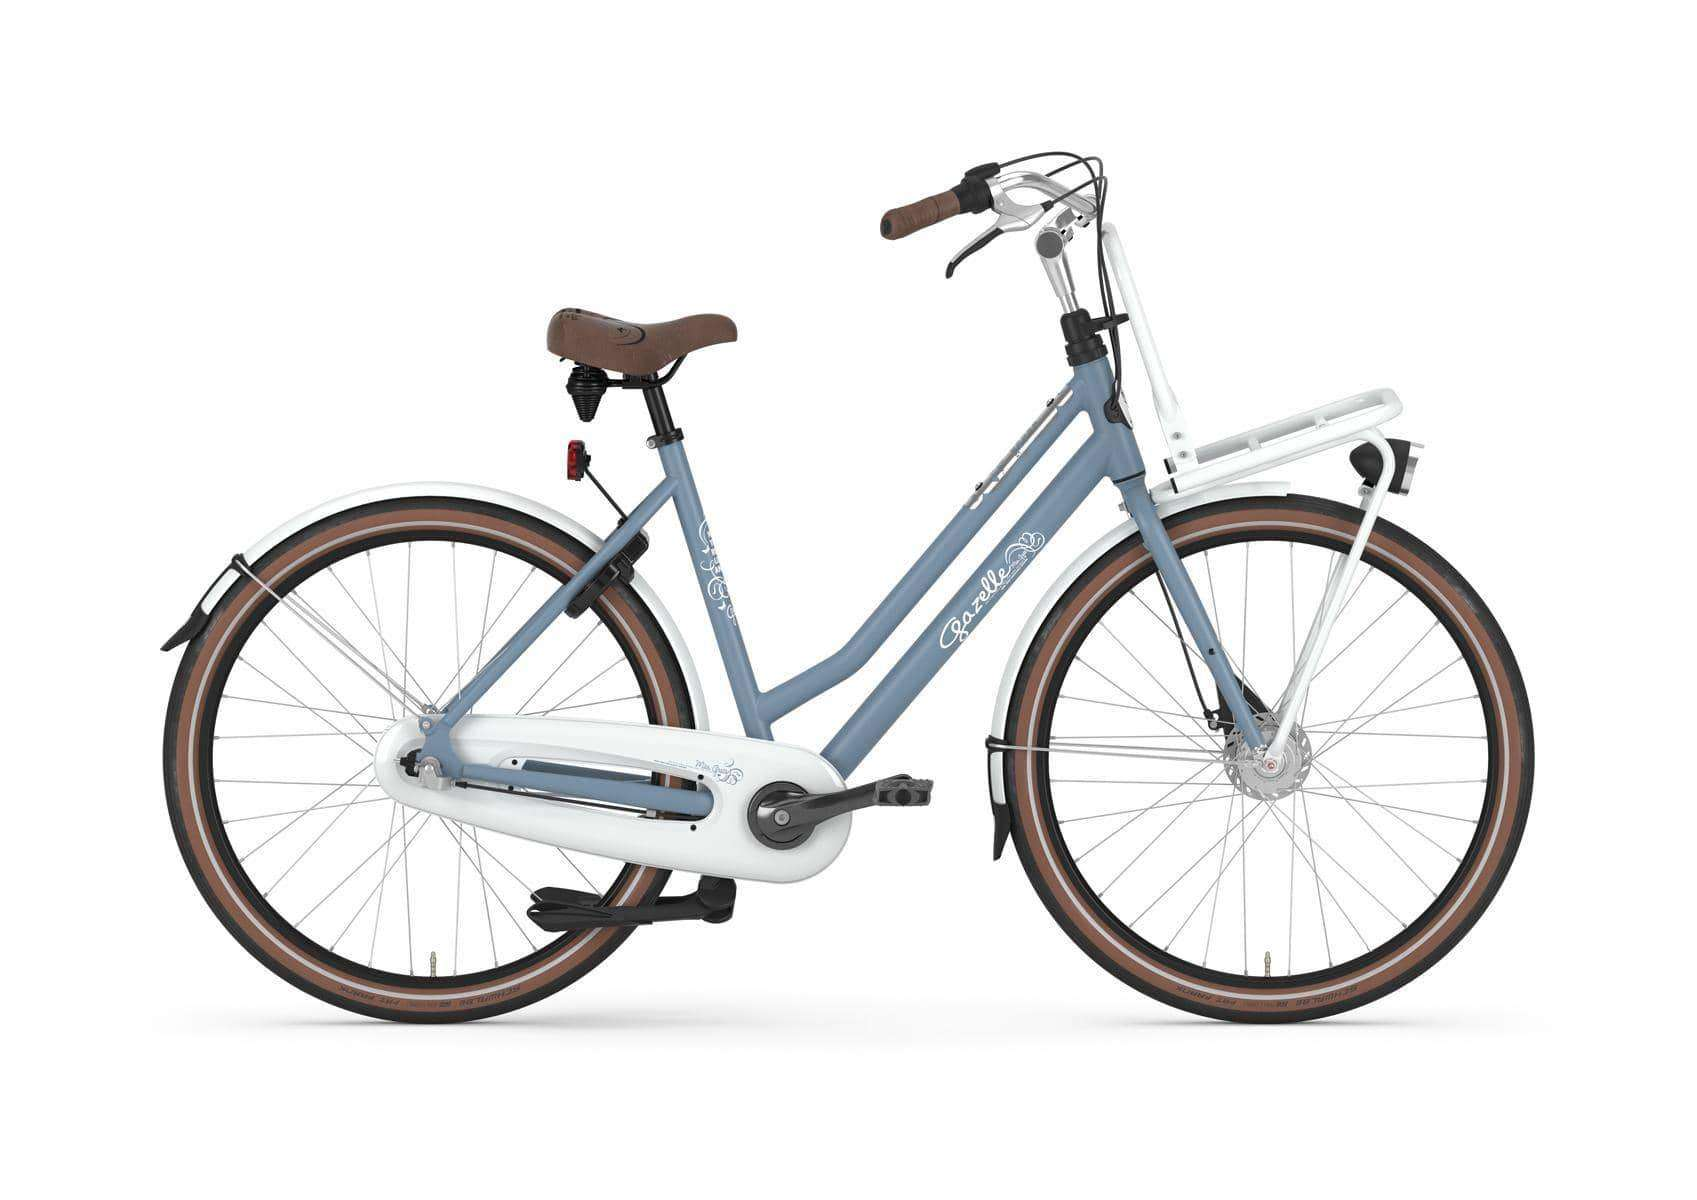 Gazelle Miss Grace 7 Dames-Jeans Blue Matt-49 cm - Fietsenconcurrent.nl